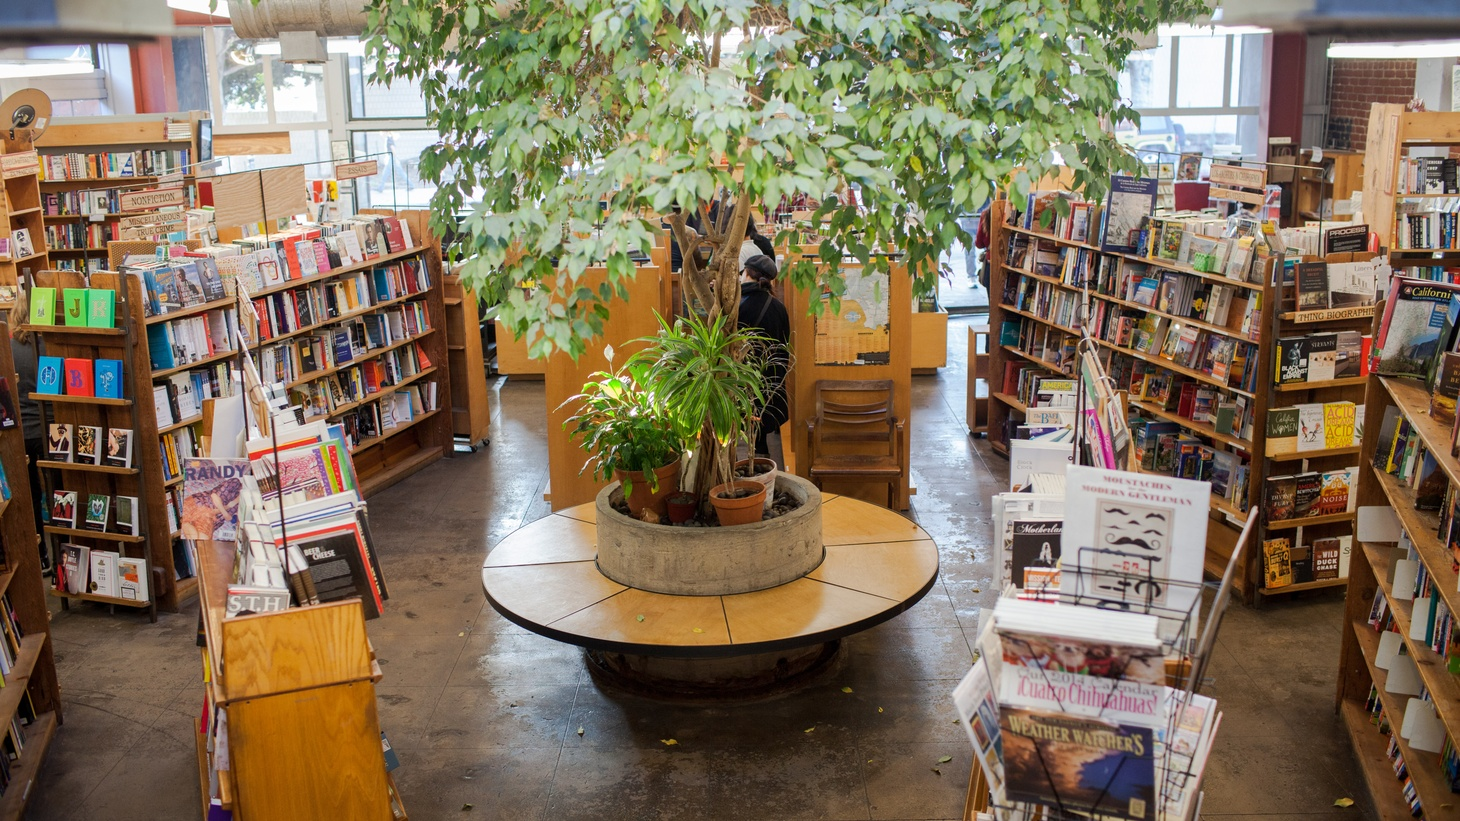 Skylight Books in Los Feliz decided not to reopen for curbside pick up today, despite permission from the city and state.